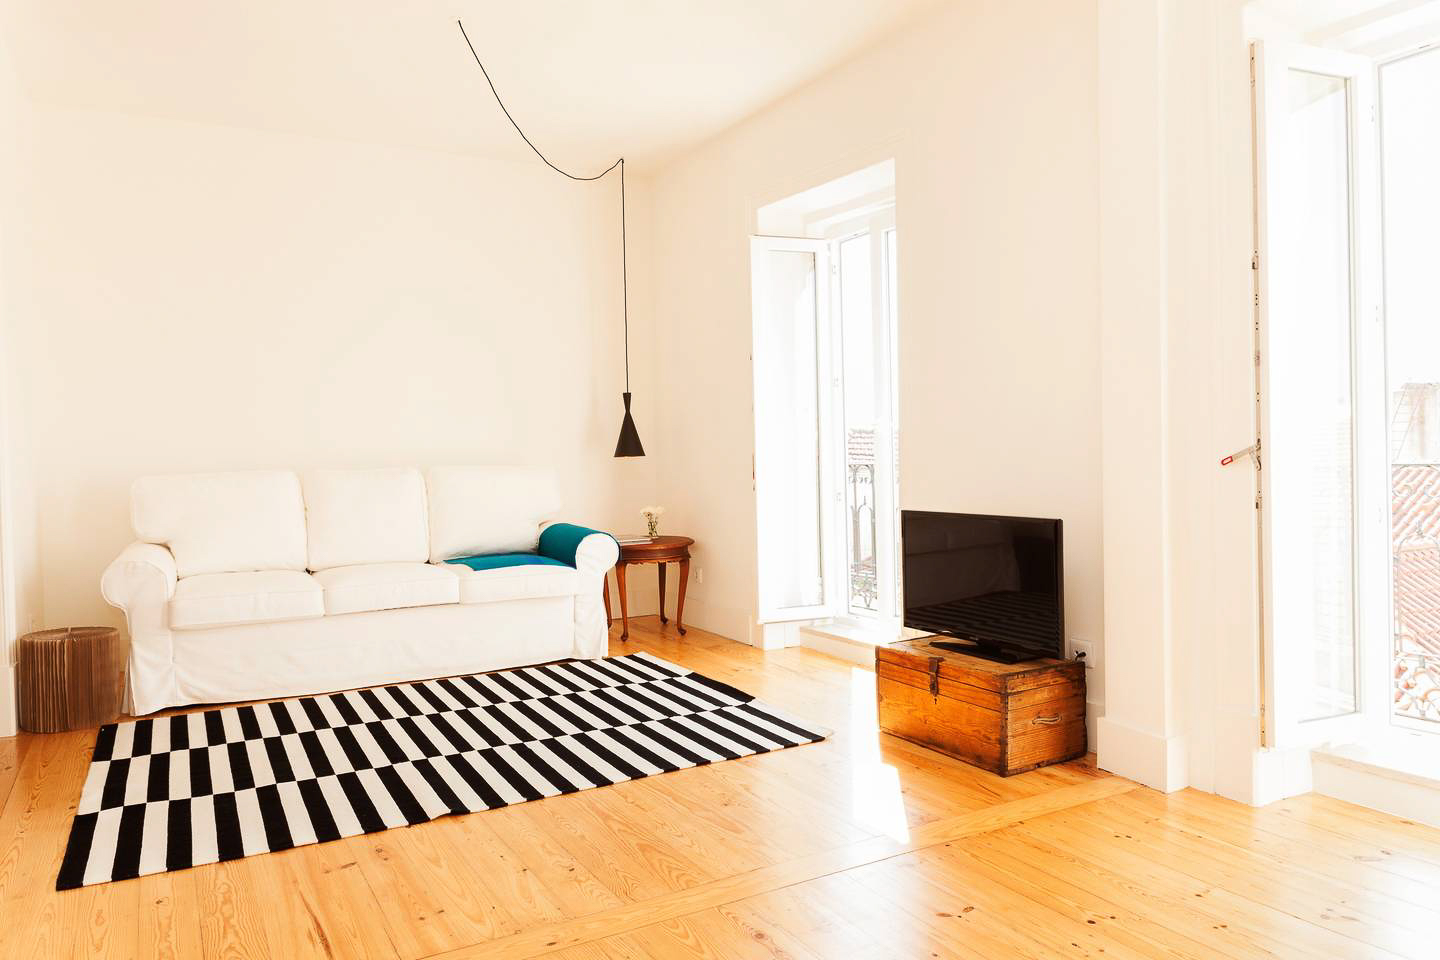 Best Airbnbs in Lisbon - Duplex and River View in Center